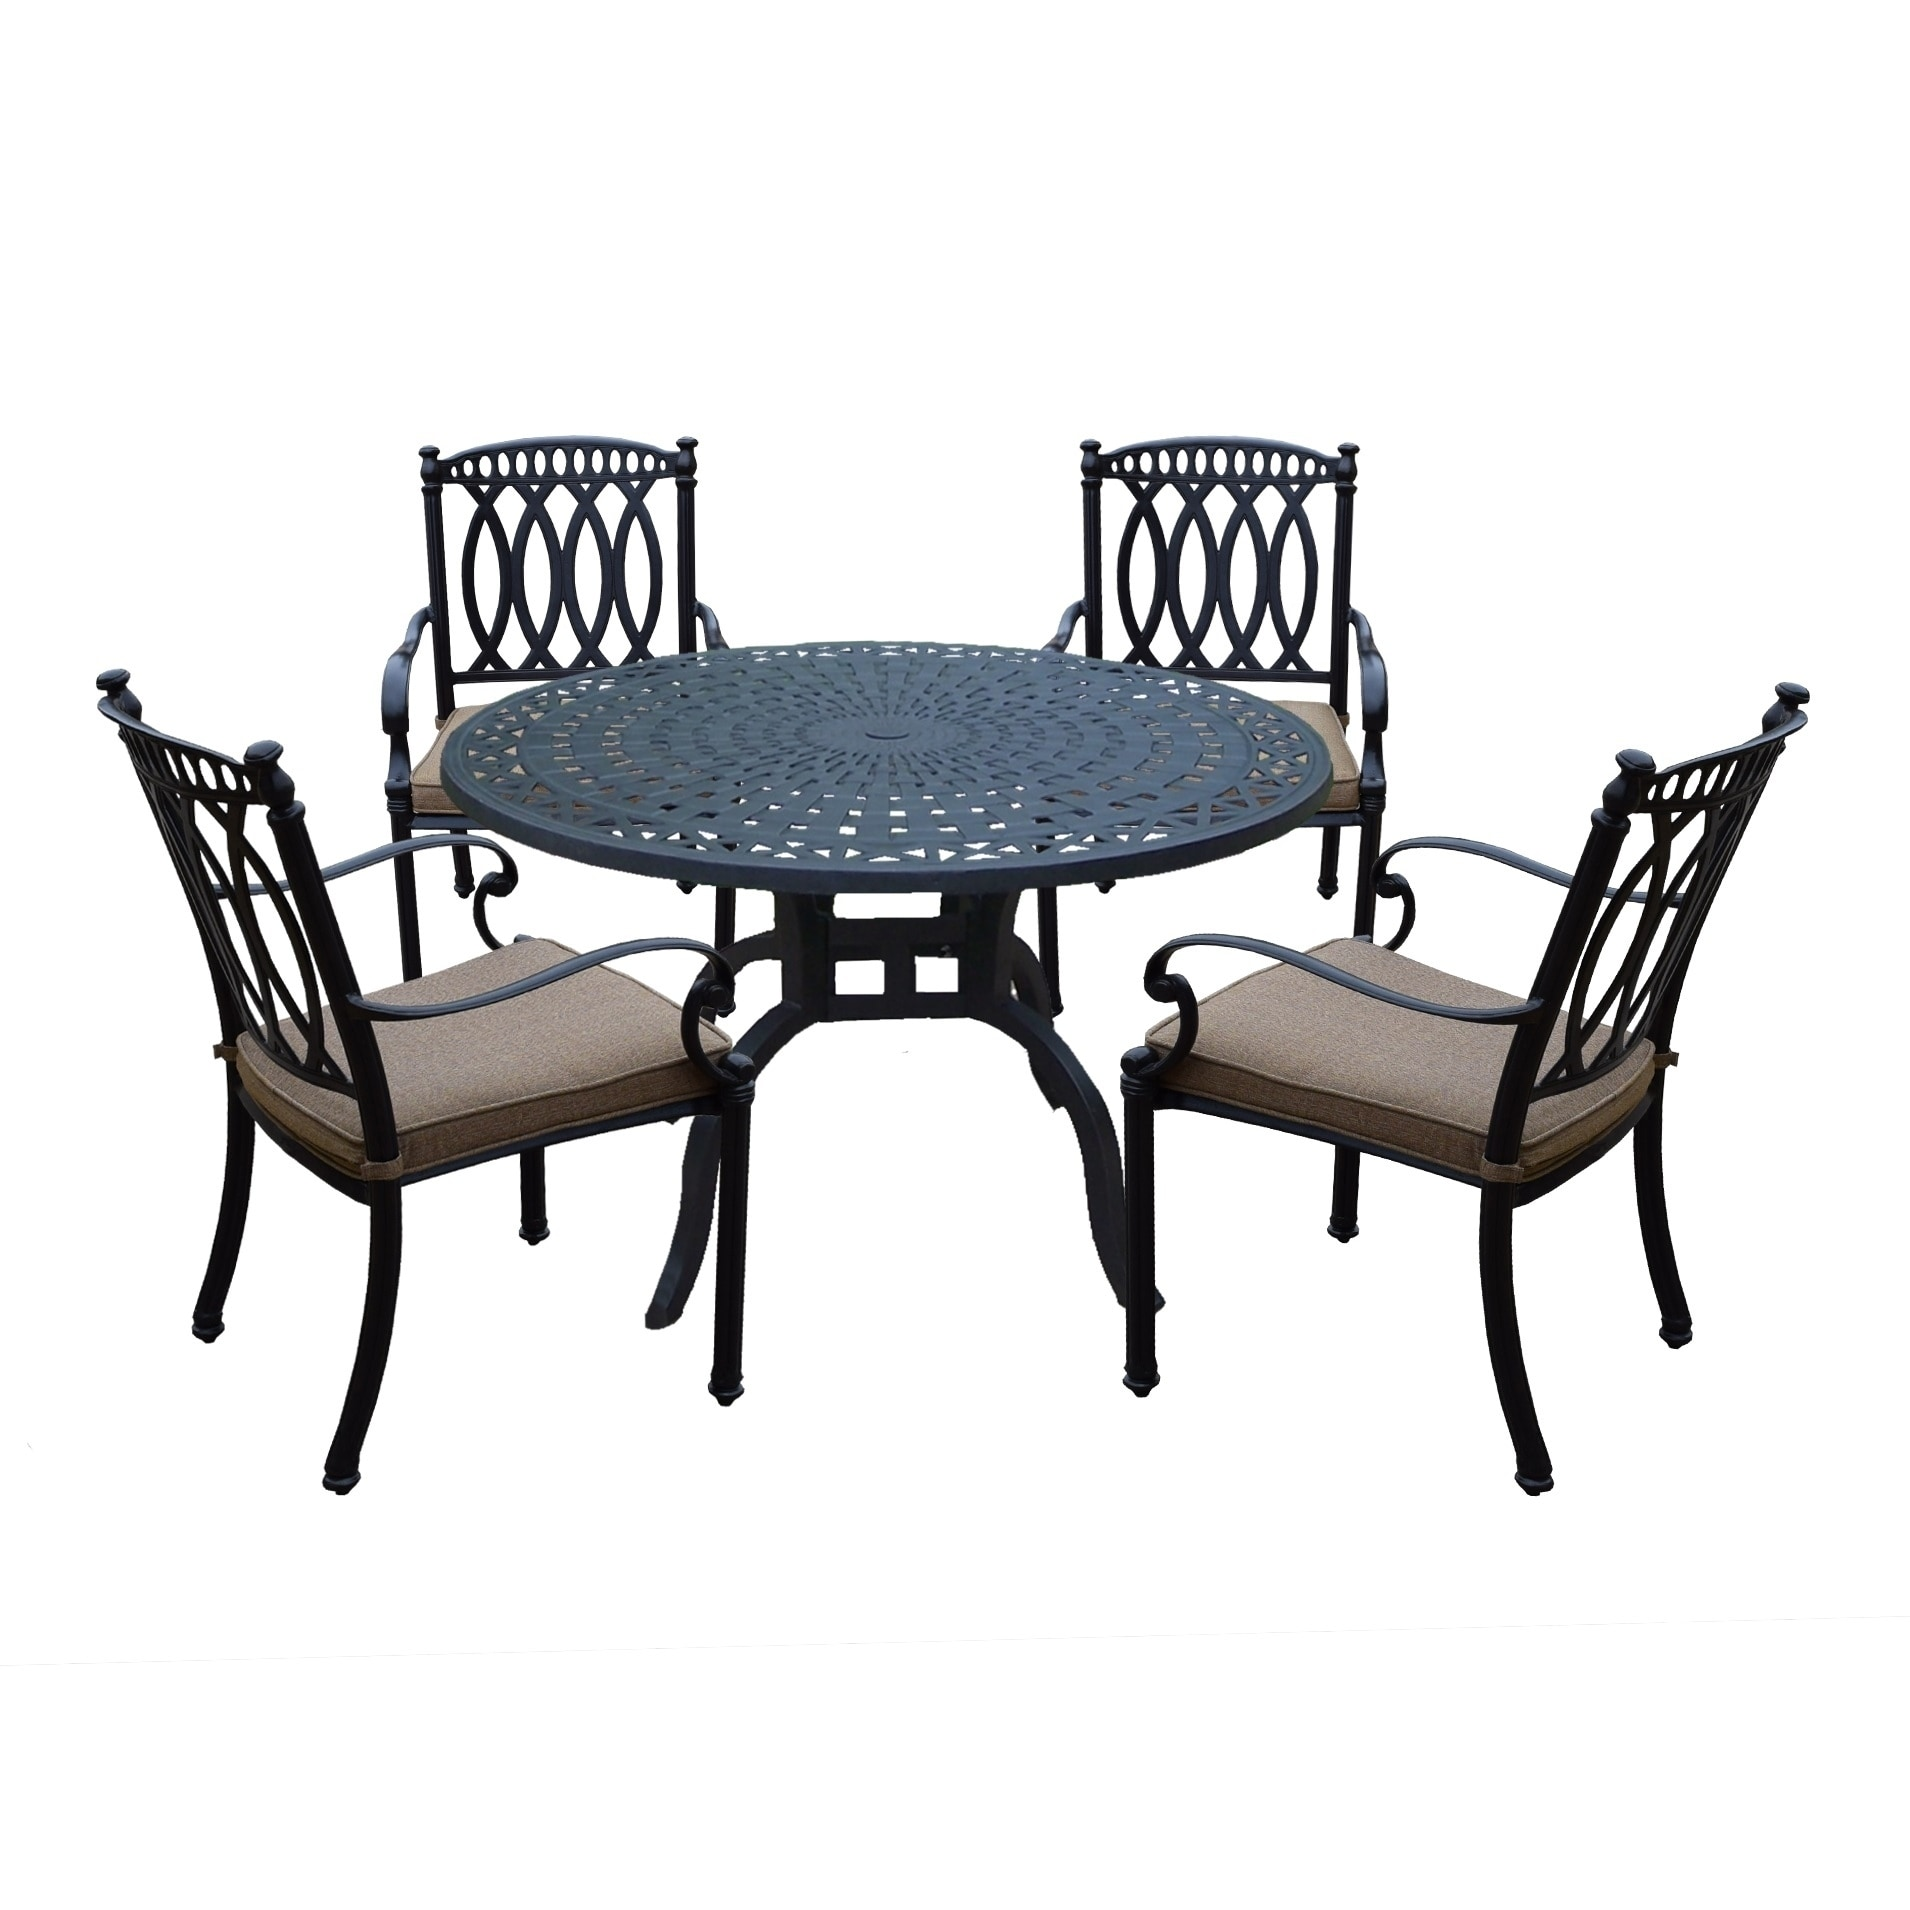 Details About Milan Aluminum 5 Piece Dining Set With 48 Inch Round Dining  Table And 4 Fully